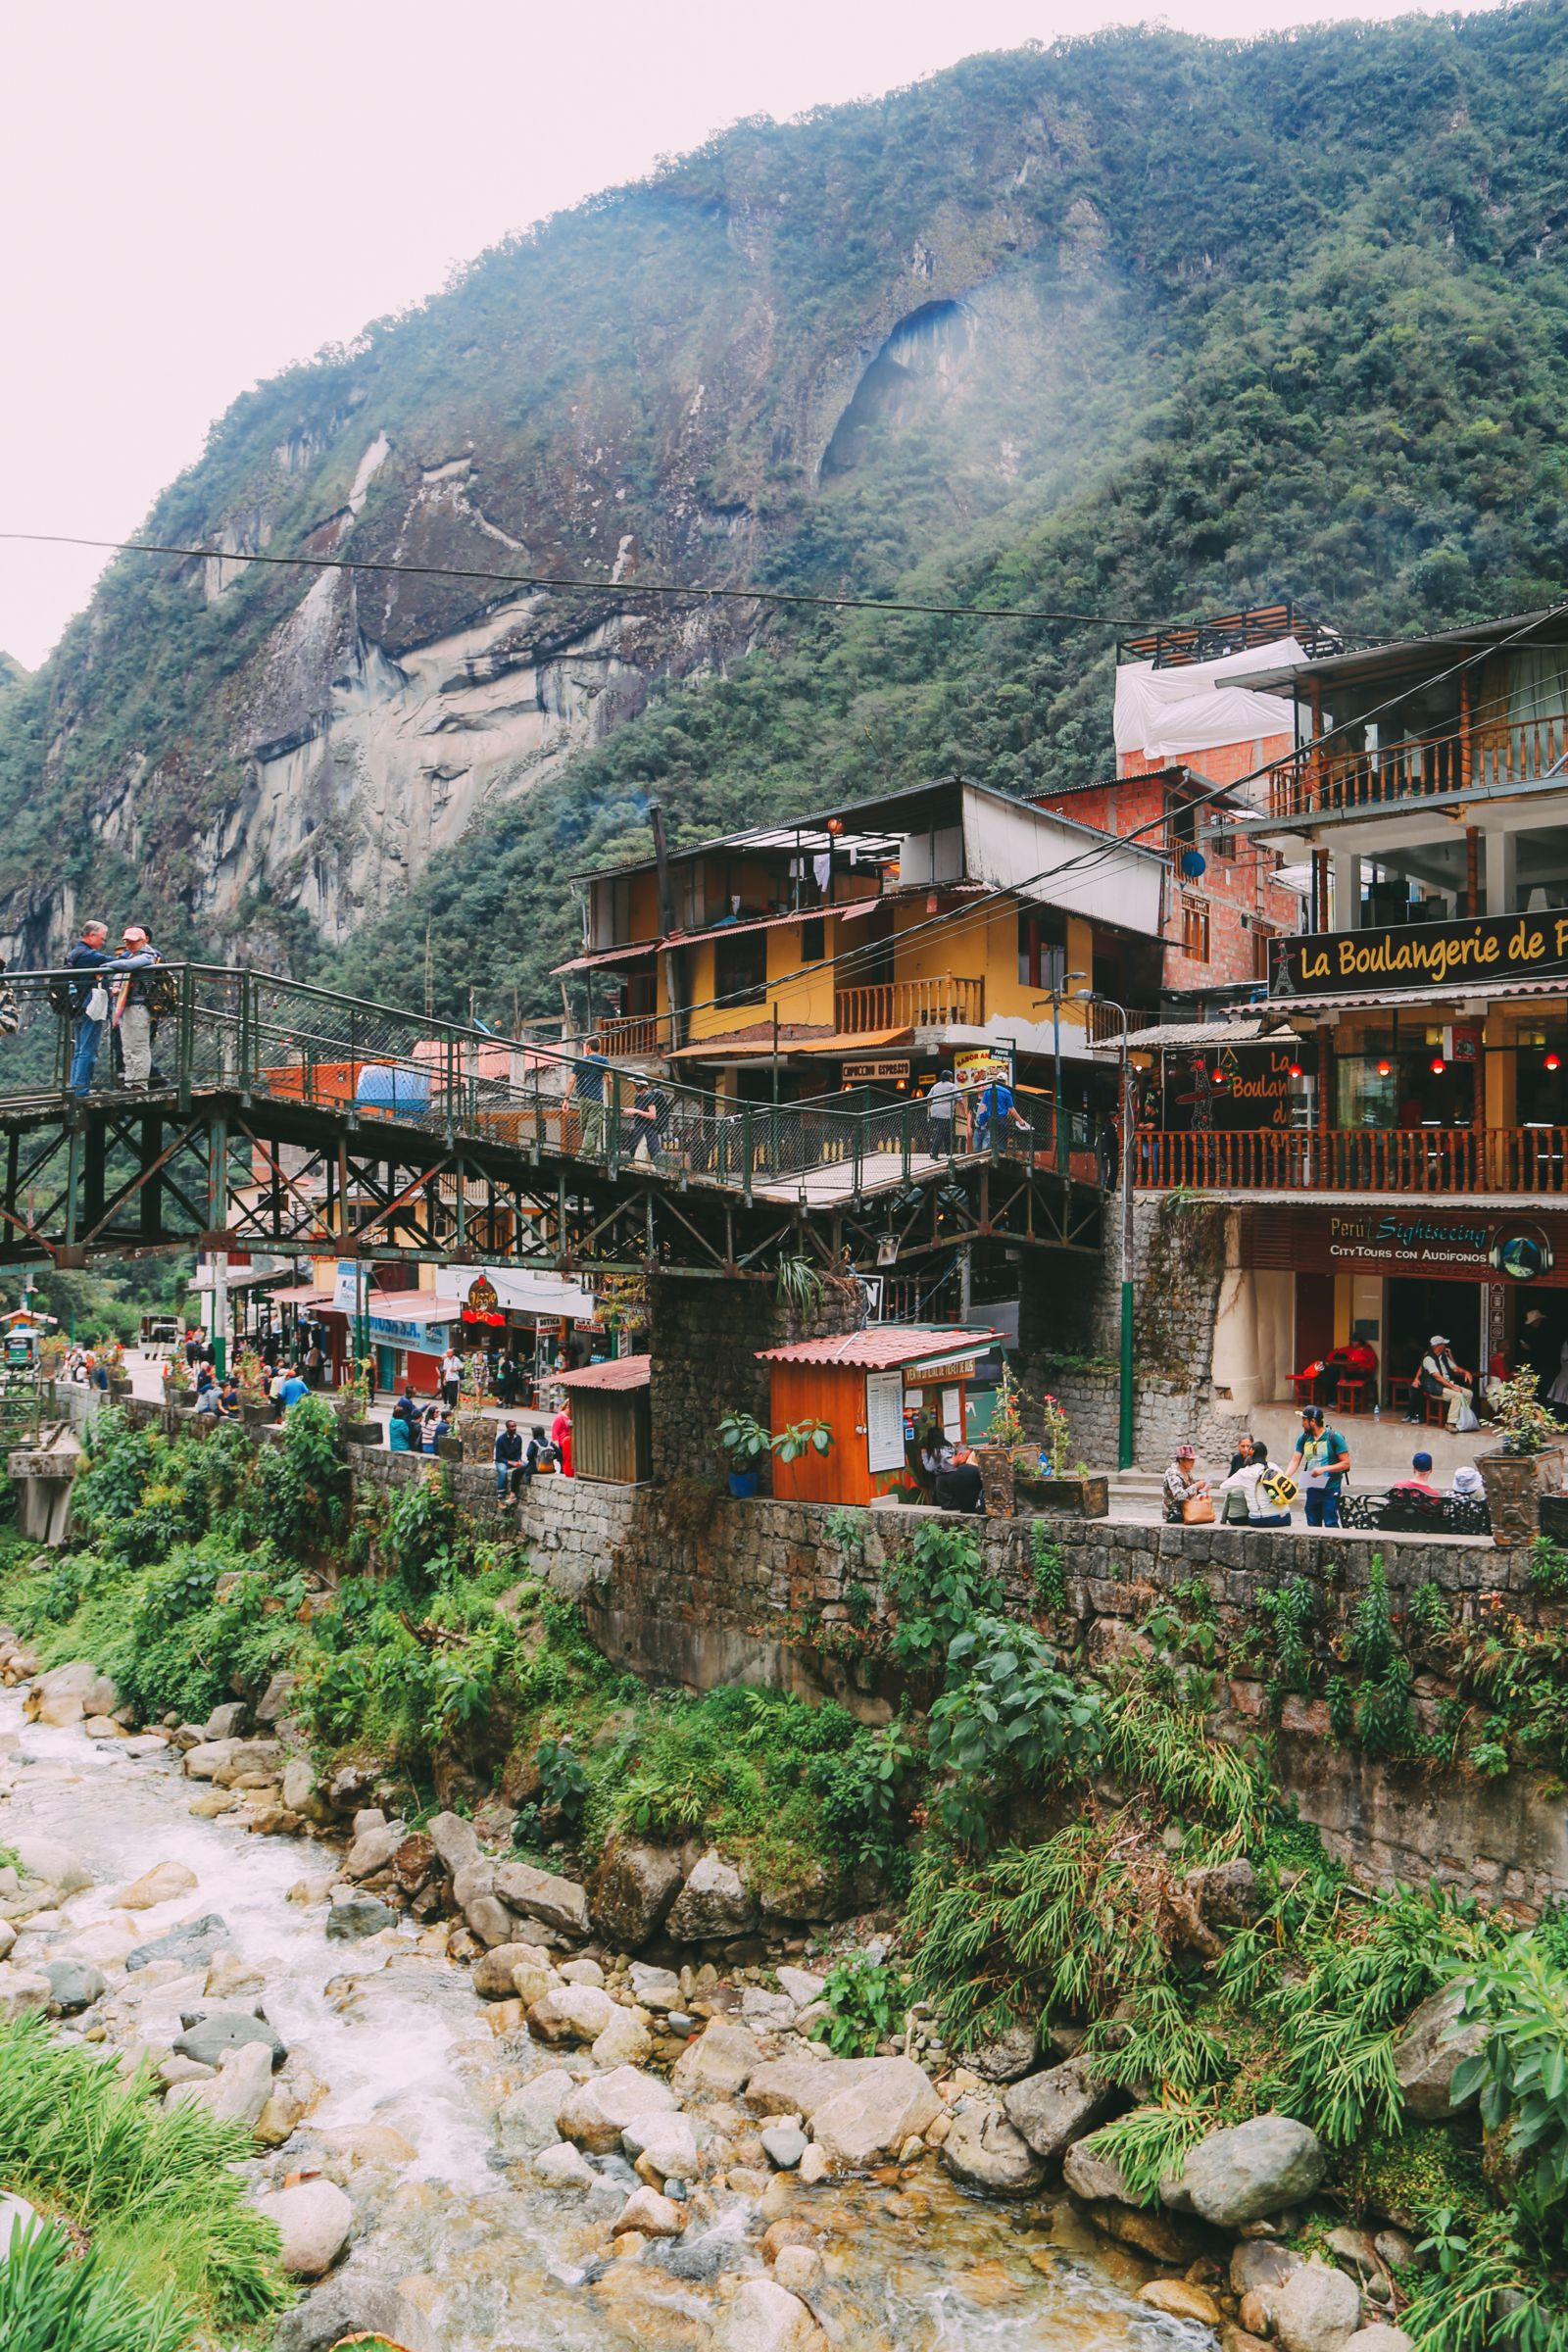 Where To Stay (And What To Do) In Aguas Caliente - The Entry Point To Machu Picchu, Peru (14)